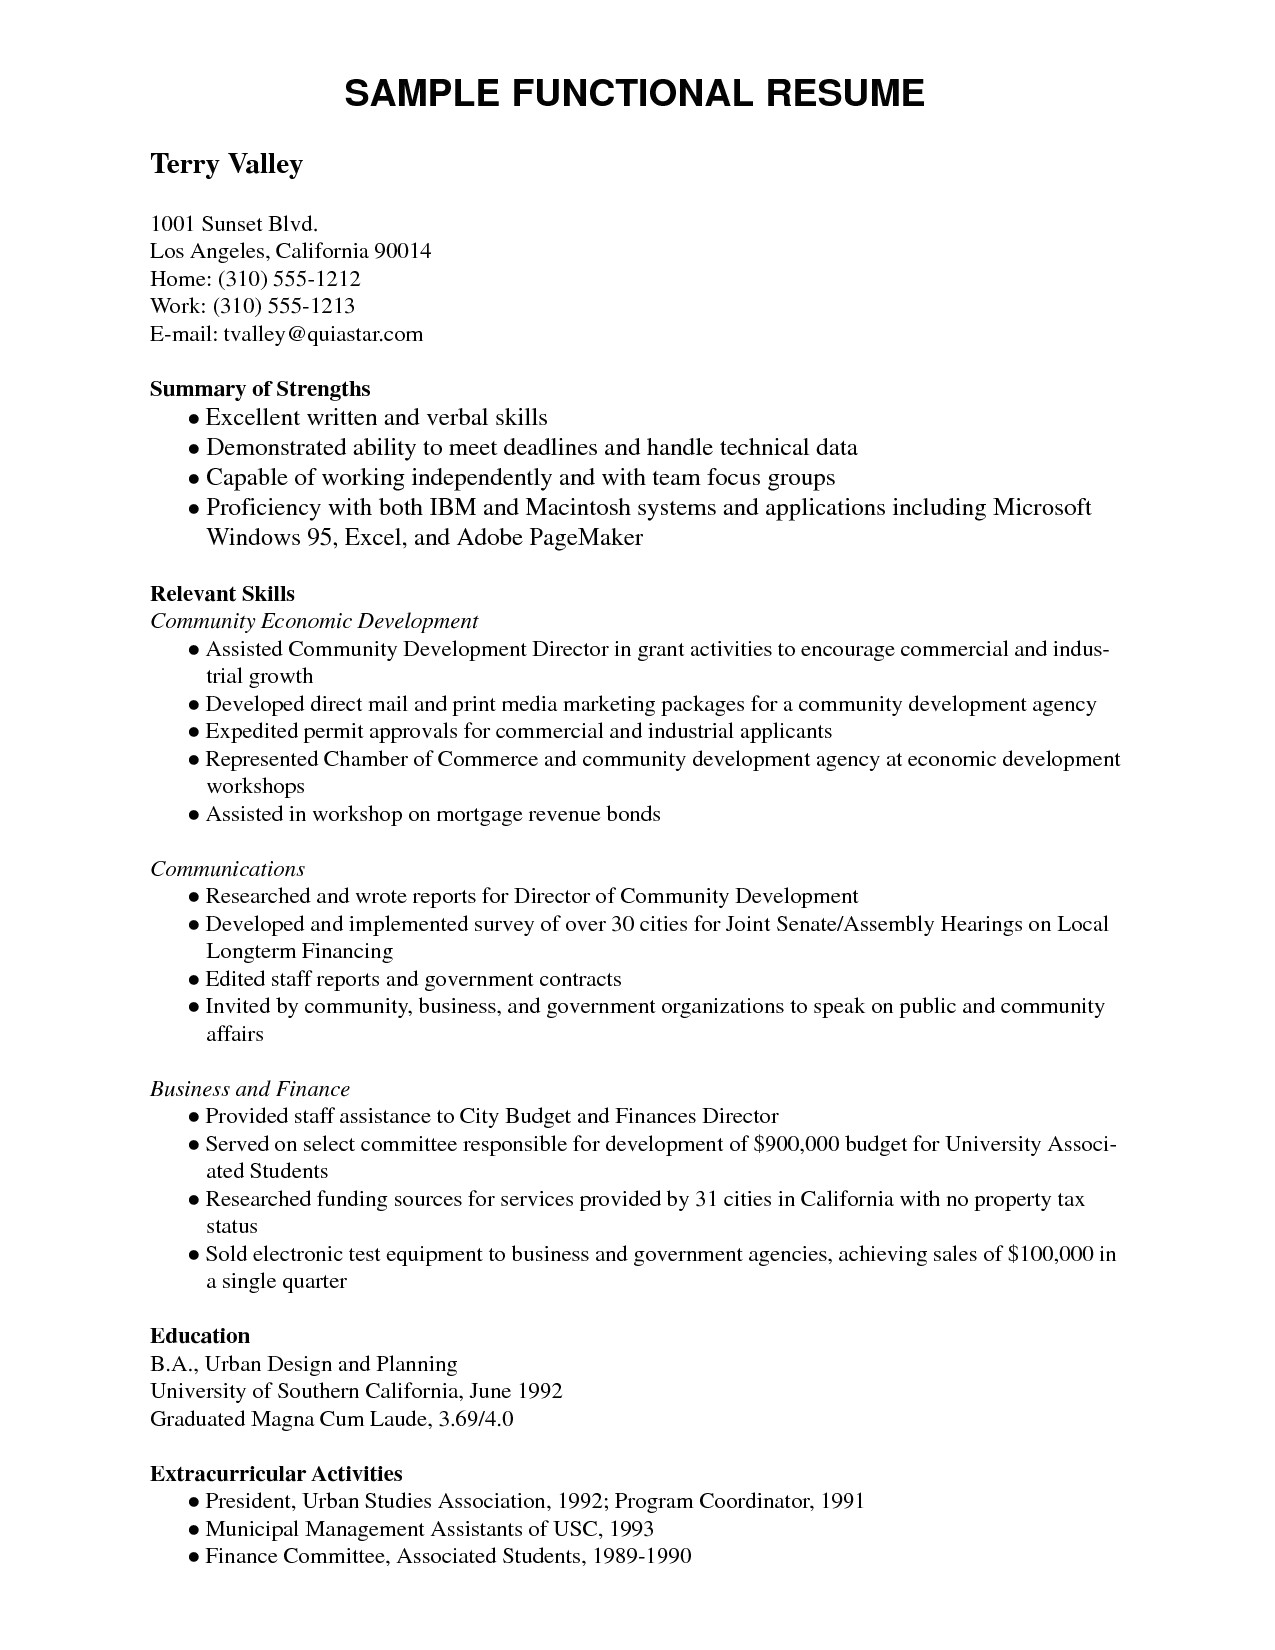 Letter to Senator Template - 64 Concepts Resume Writing Template